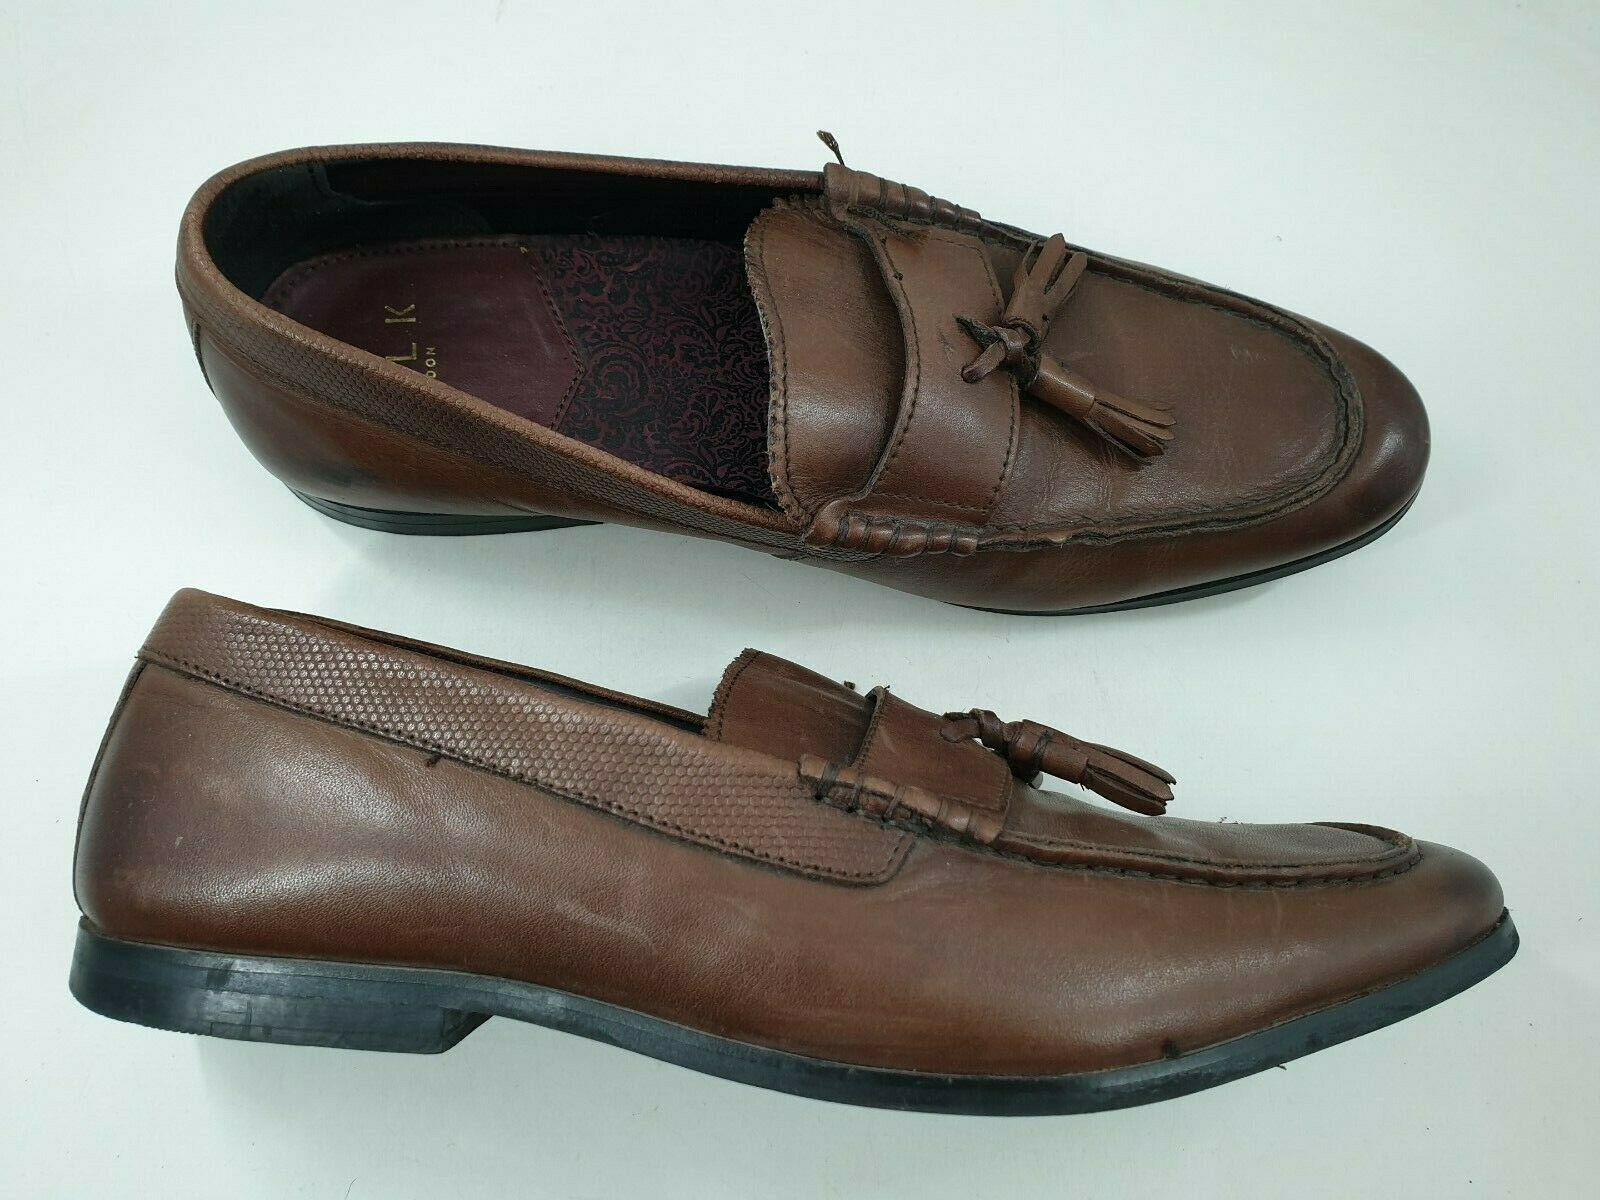 Walk London size 8 (42) tan brown leather slip on casual flat tasselled loafers